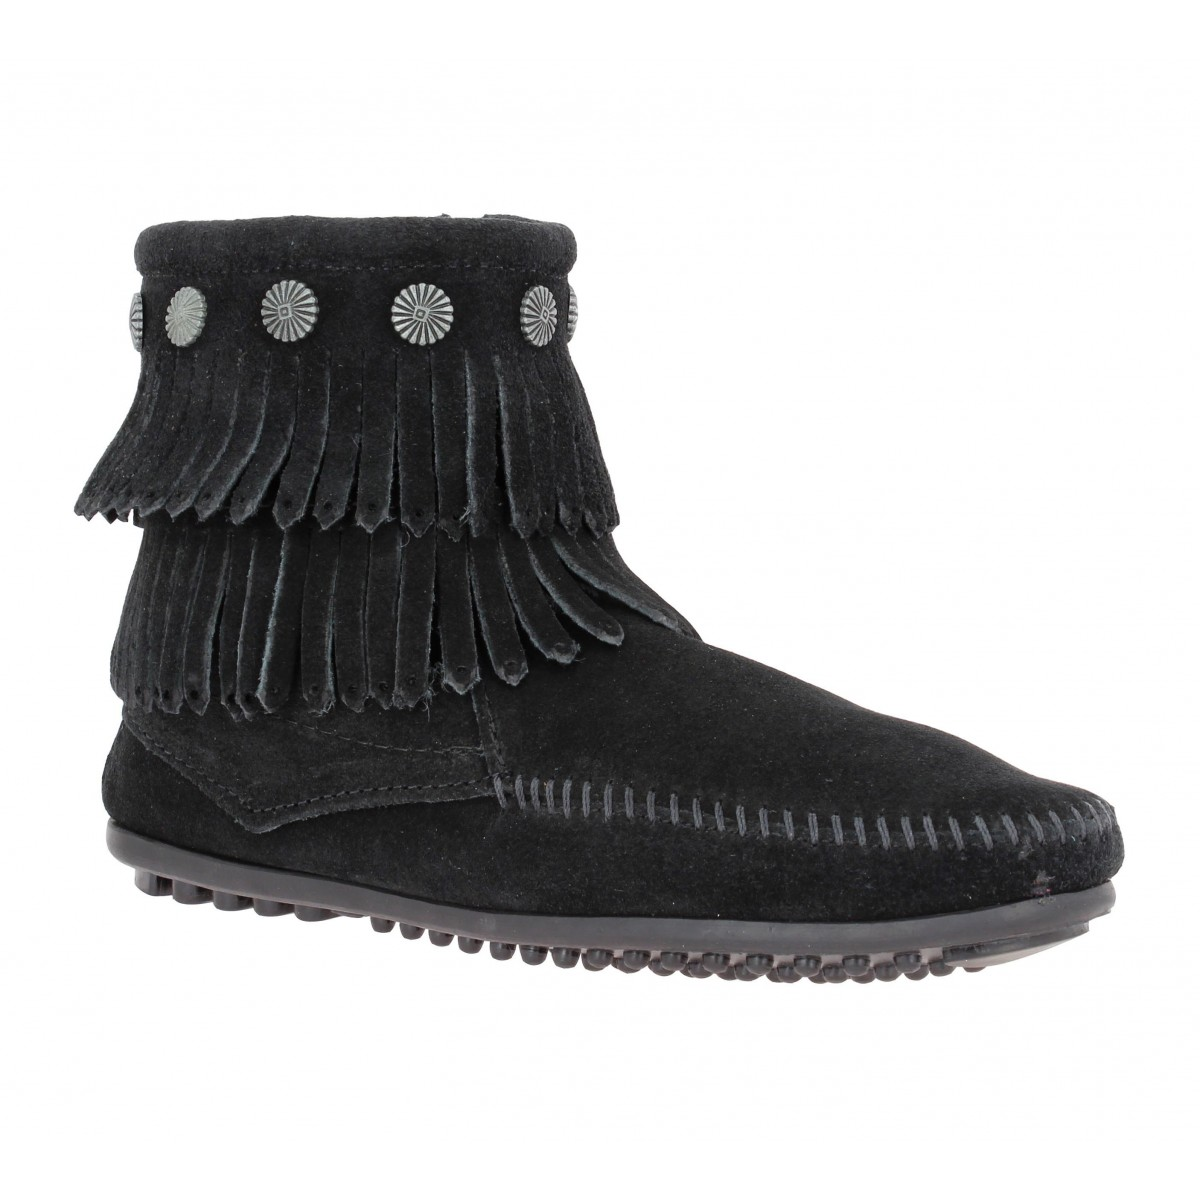 Bottines MINNETONKA Double Fringe velours Femme Noir